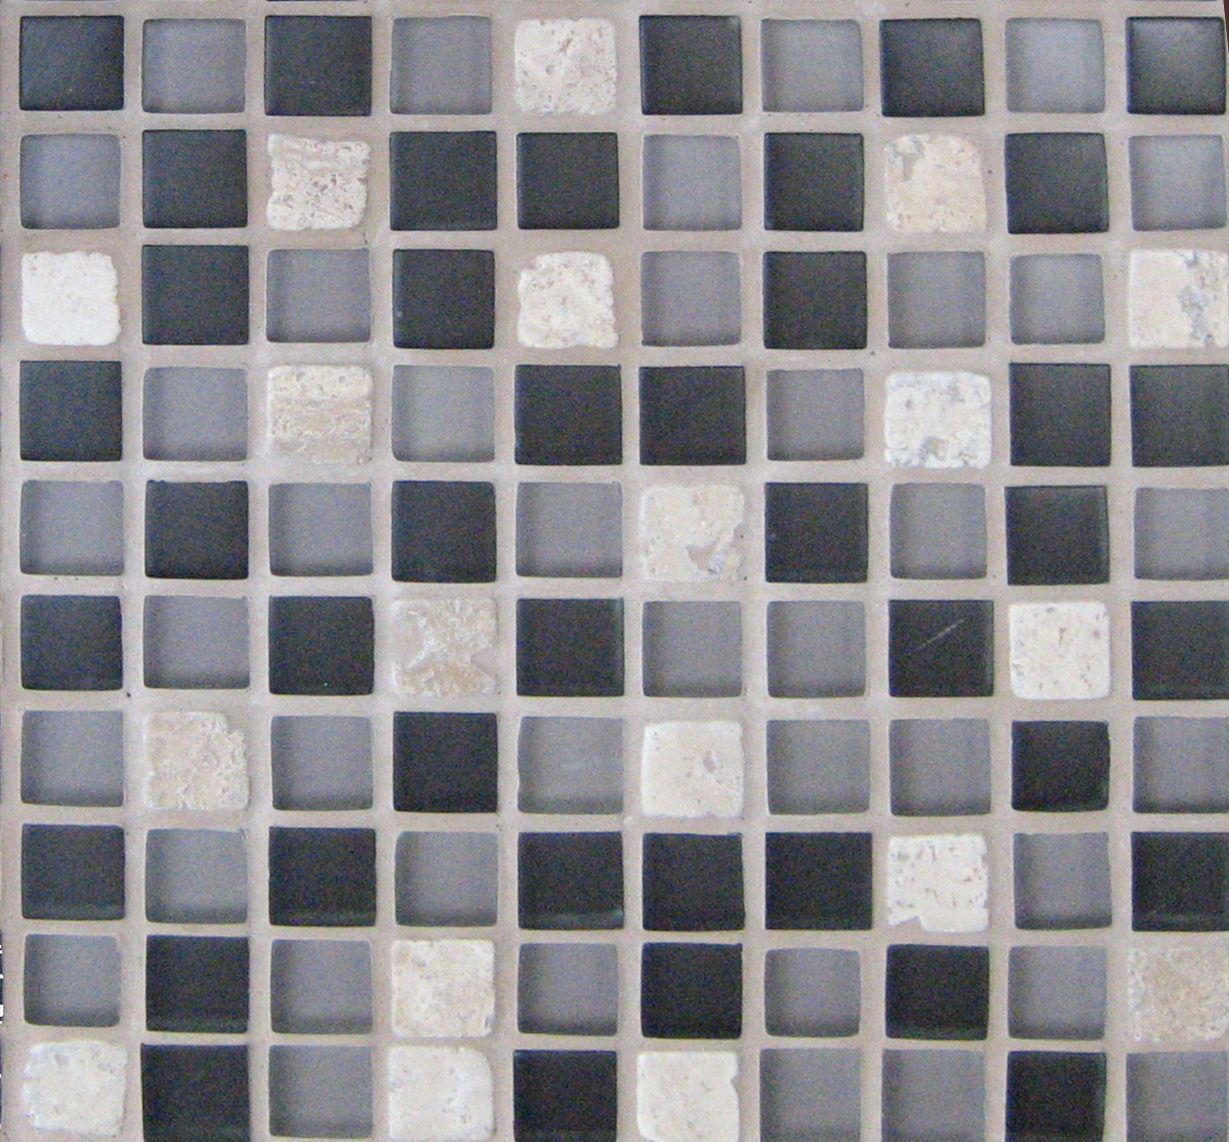 Bathroom Tiling Dan Redman